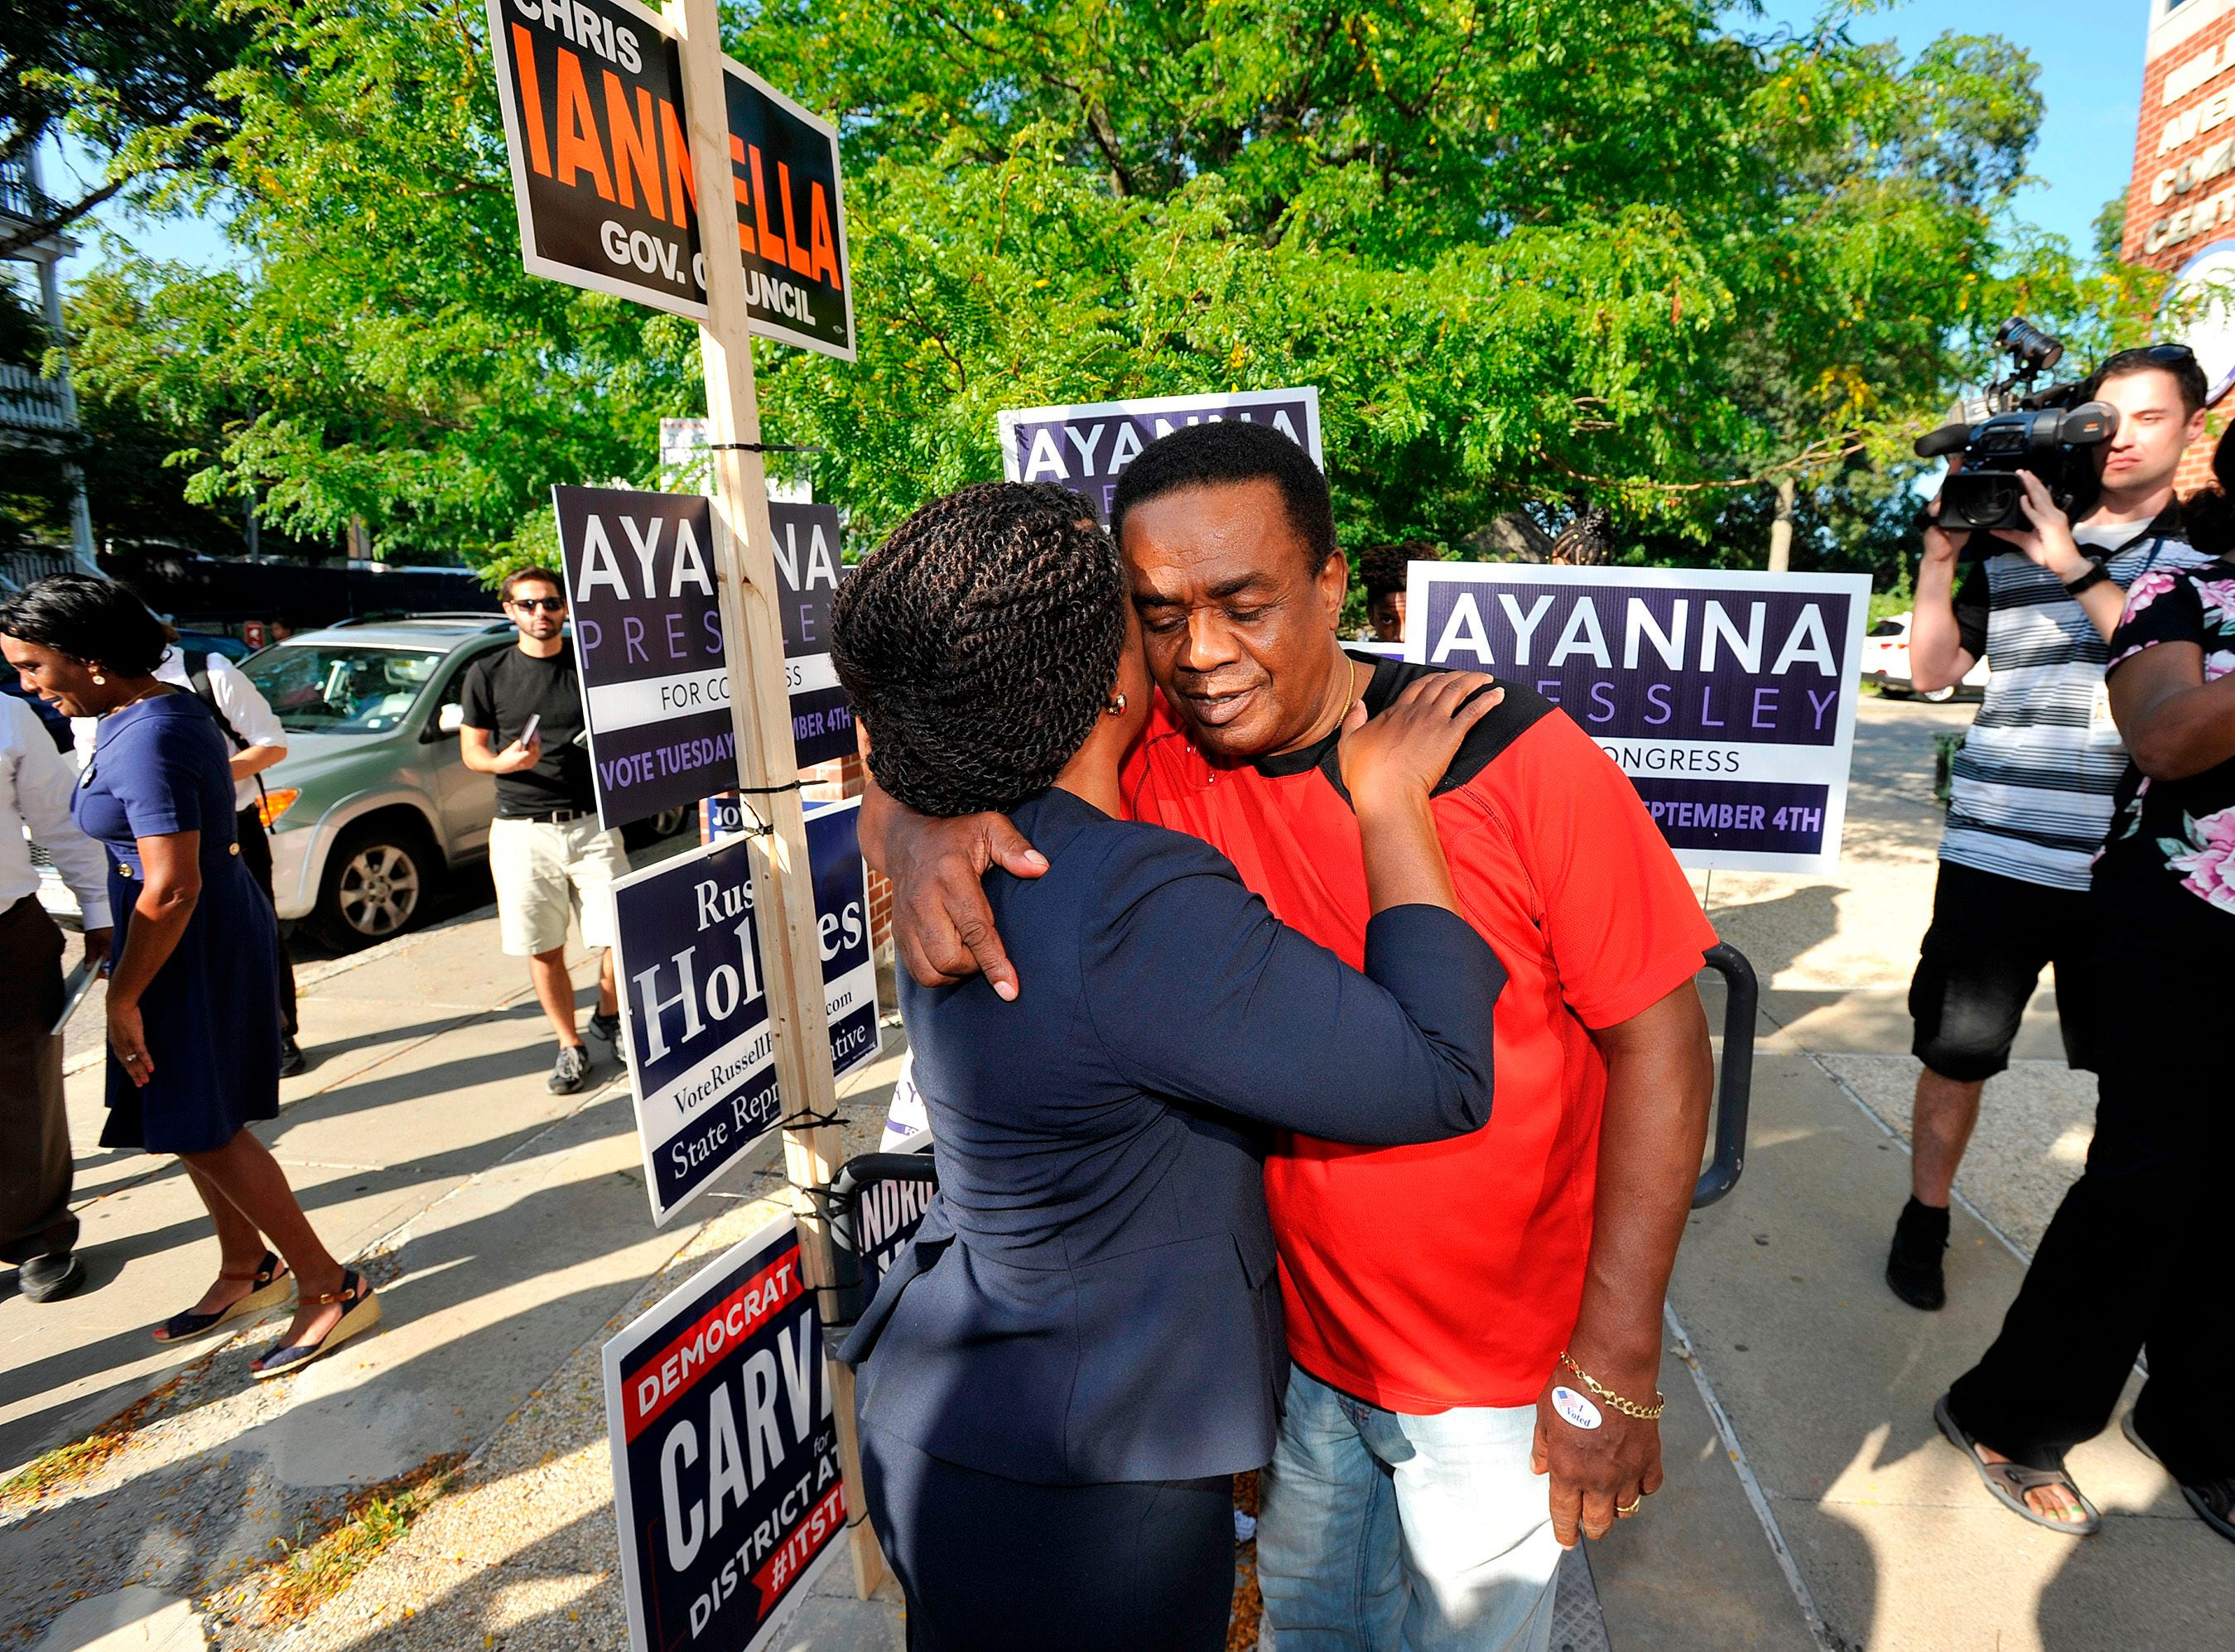 Ayanna Pressley, Democratic candidate for Congress,  embraces a supporter at the Mildred Middle School and Community Center in Boston, that served as a polling station for primary election on September 4, 2018.